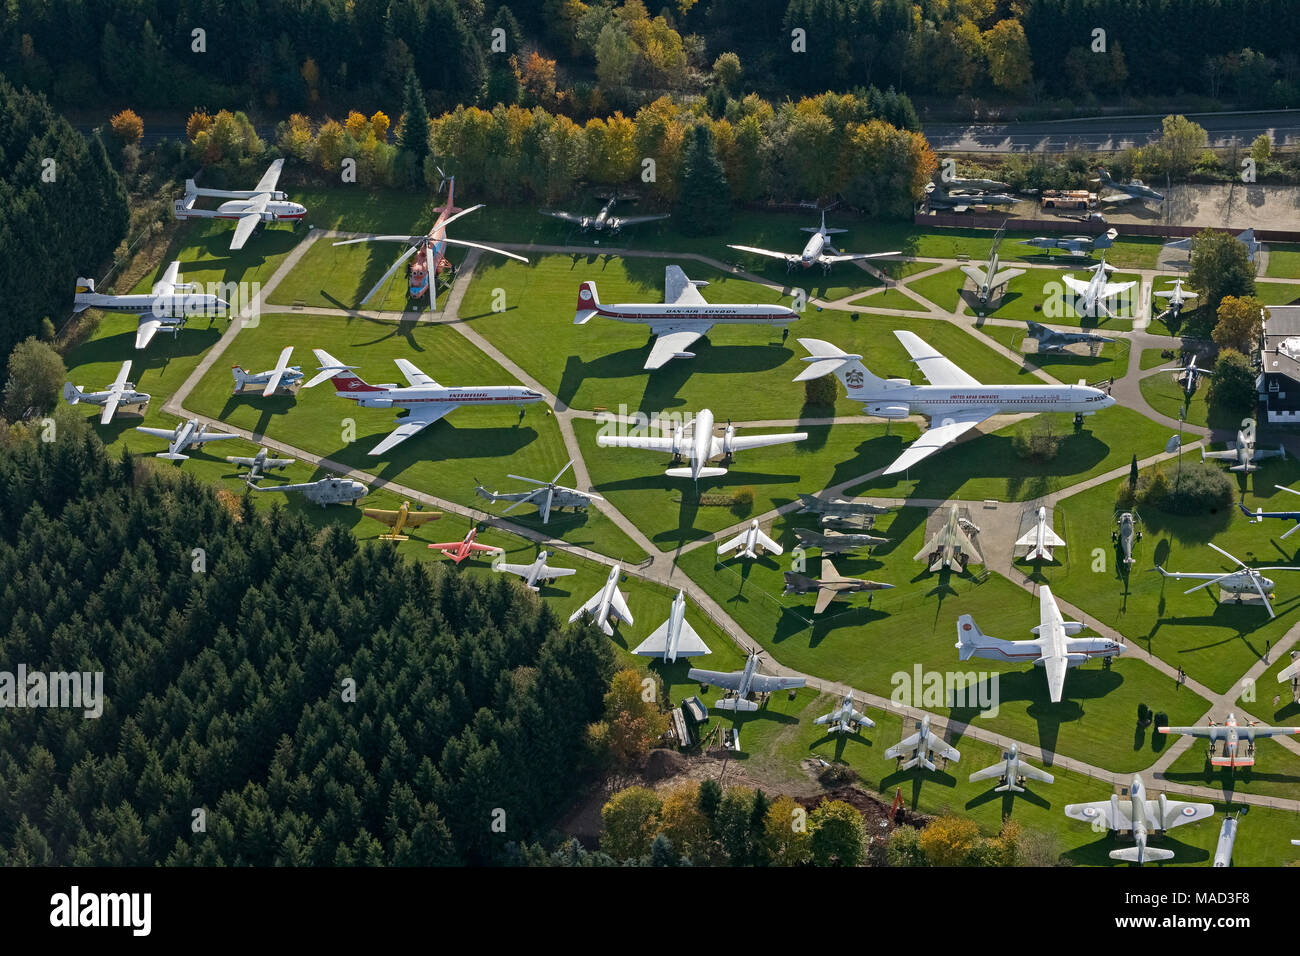 Aerial photo, Flight Exhibition L. + P. Junior Private Aviation Museum, Antonow An-26, Concorde, Messerschmitt Bf 108, F-104 Starfighter, McDonnell F- - Stock Image